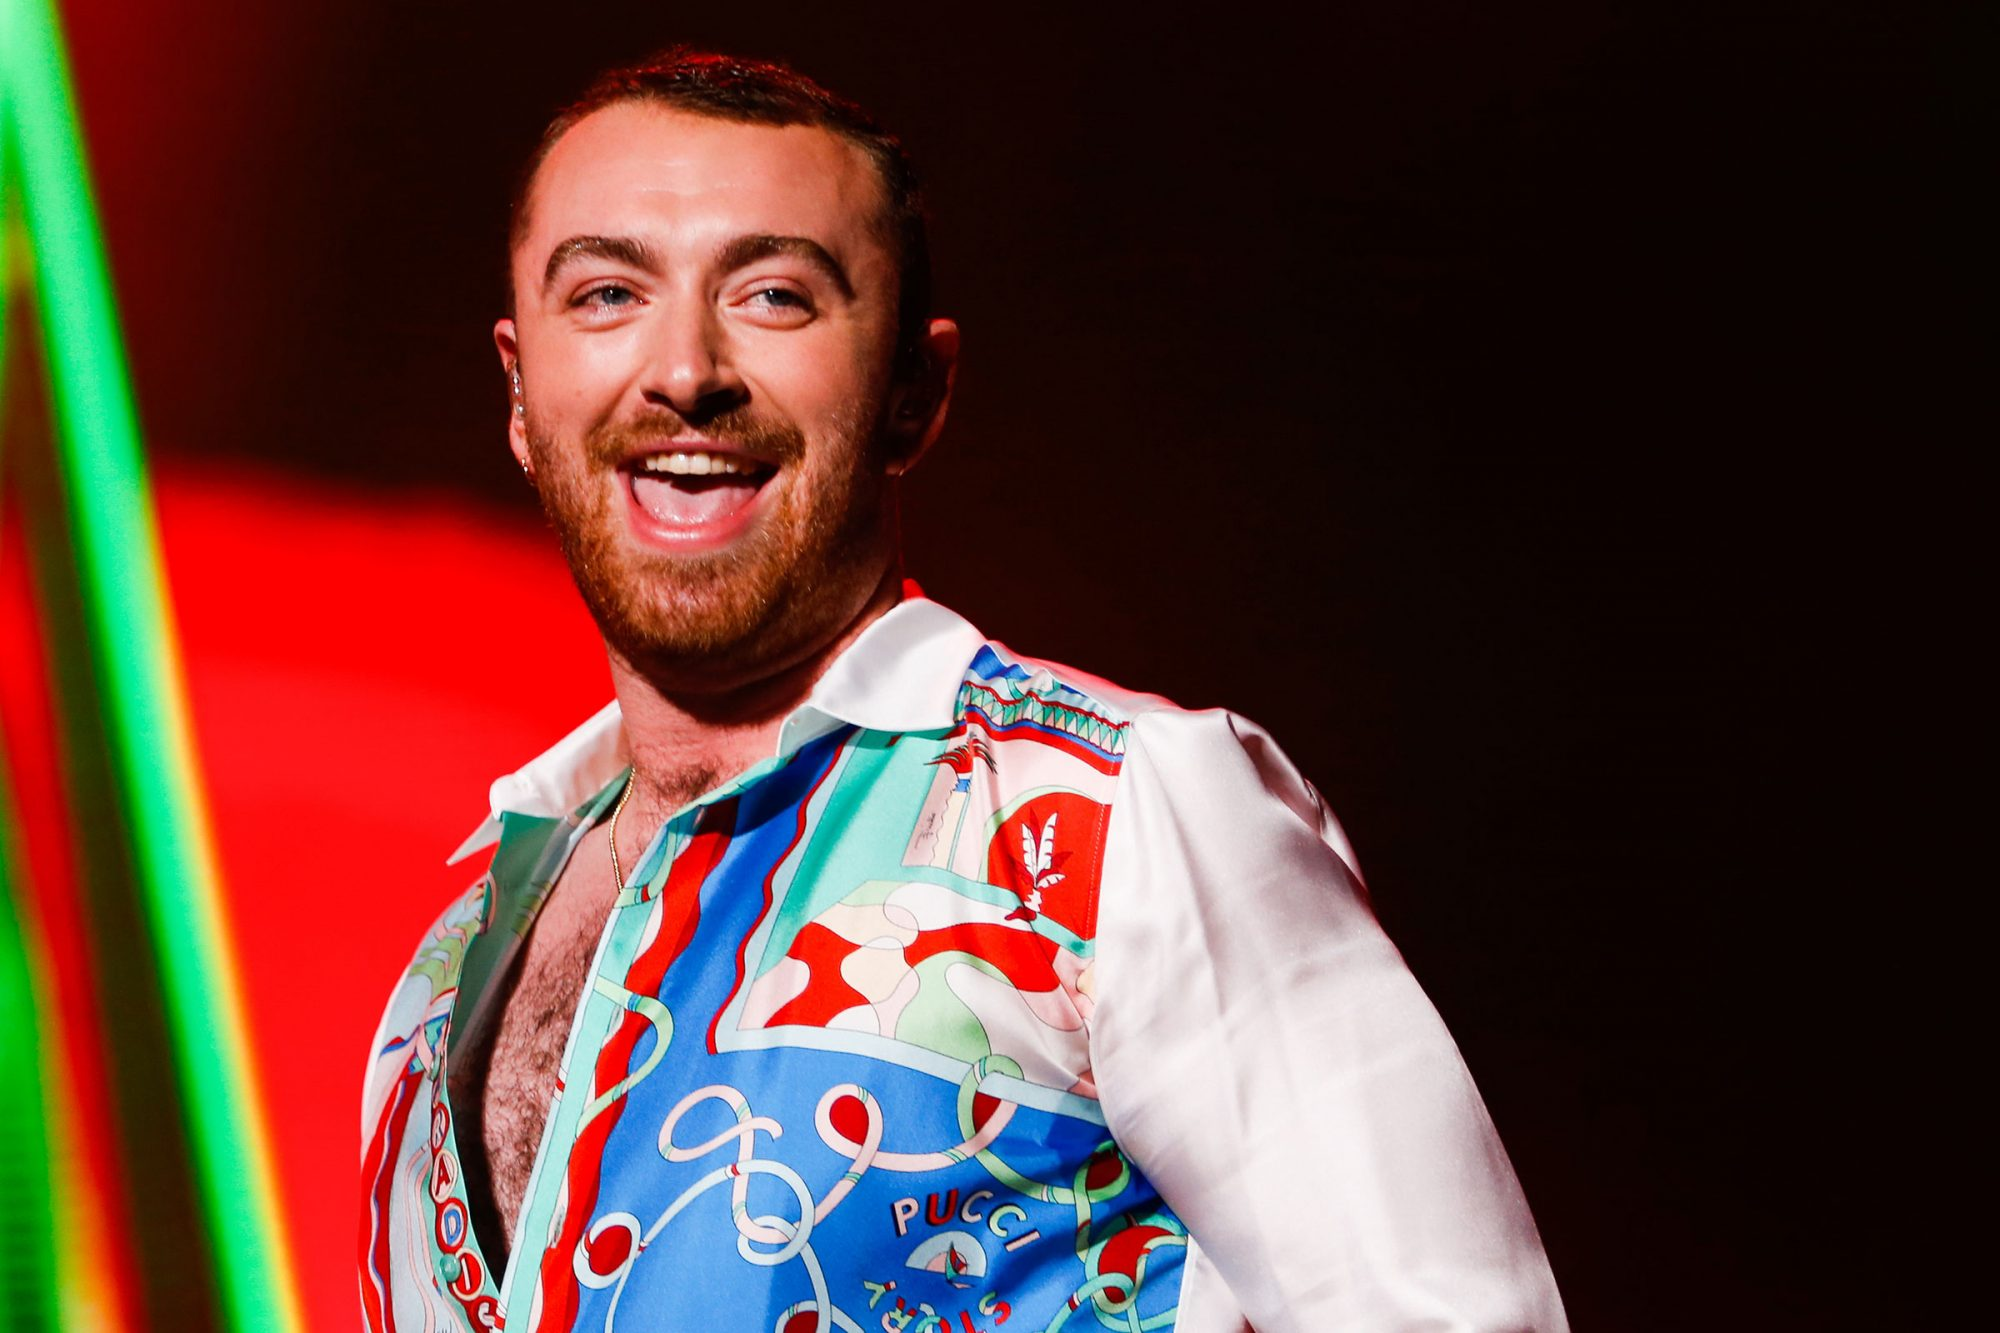 Sam Smith new album To Die For set for May 2020 release | EW.com